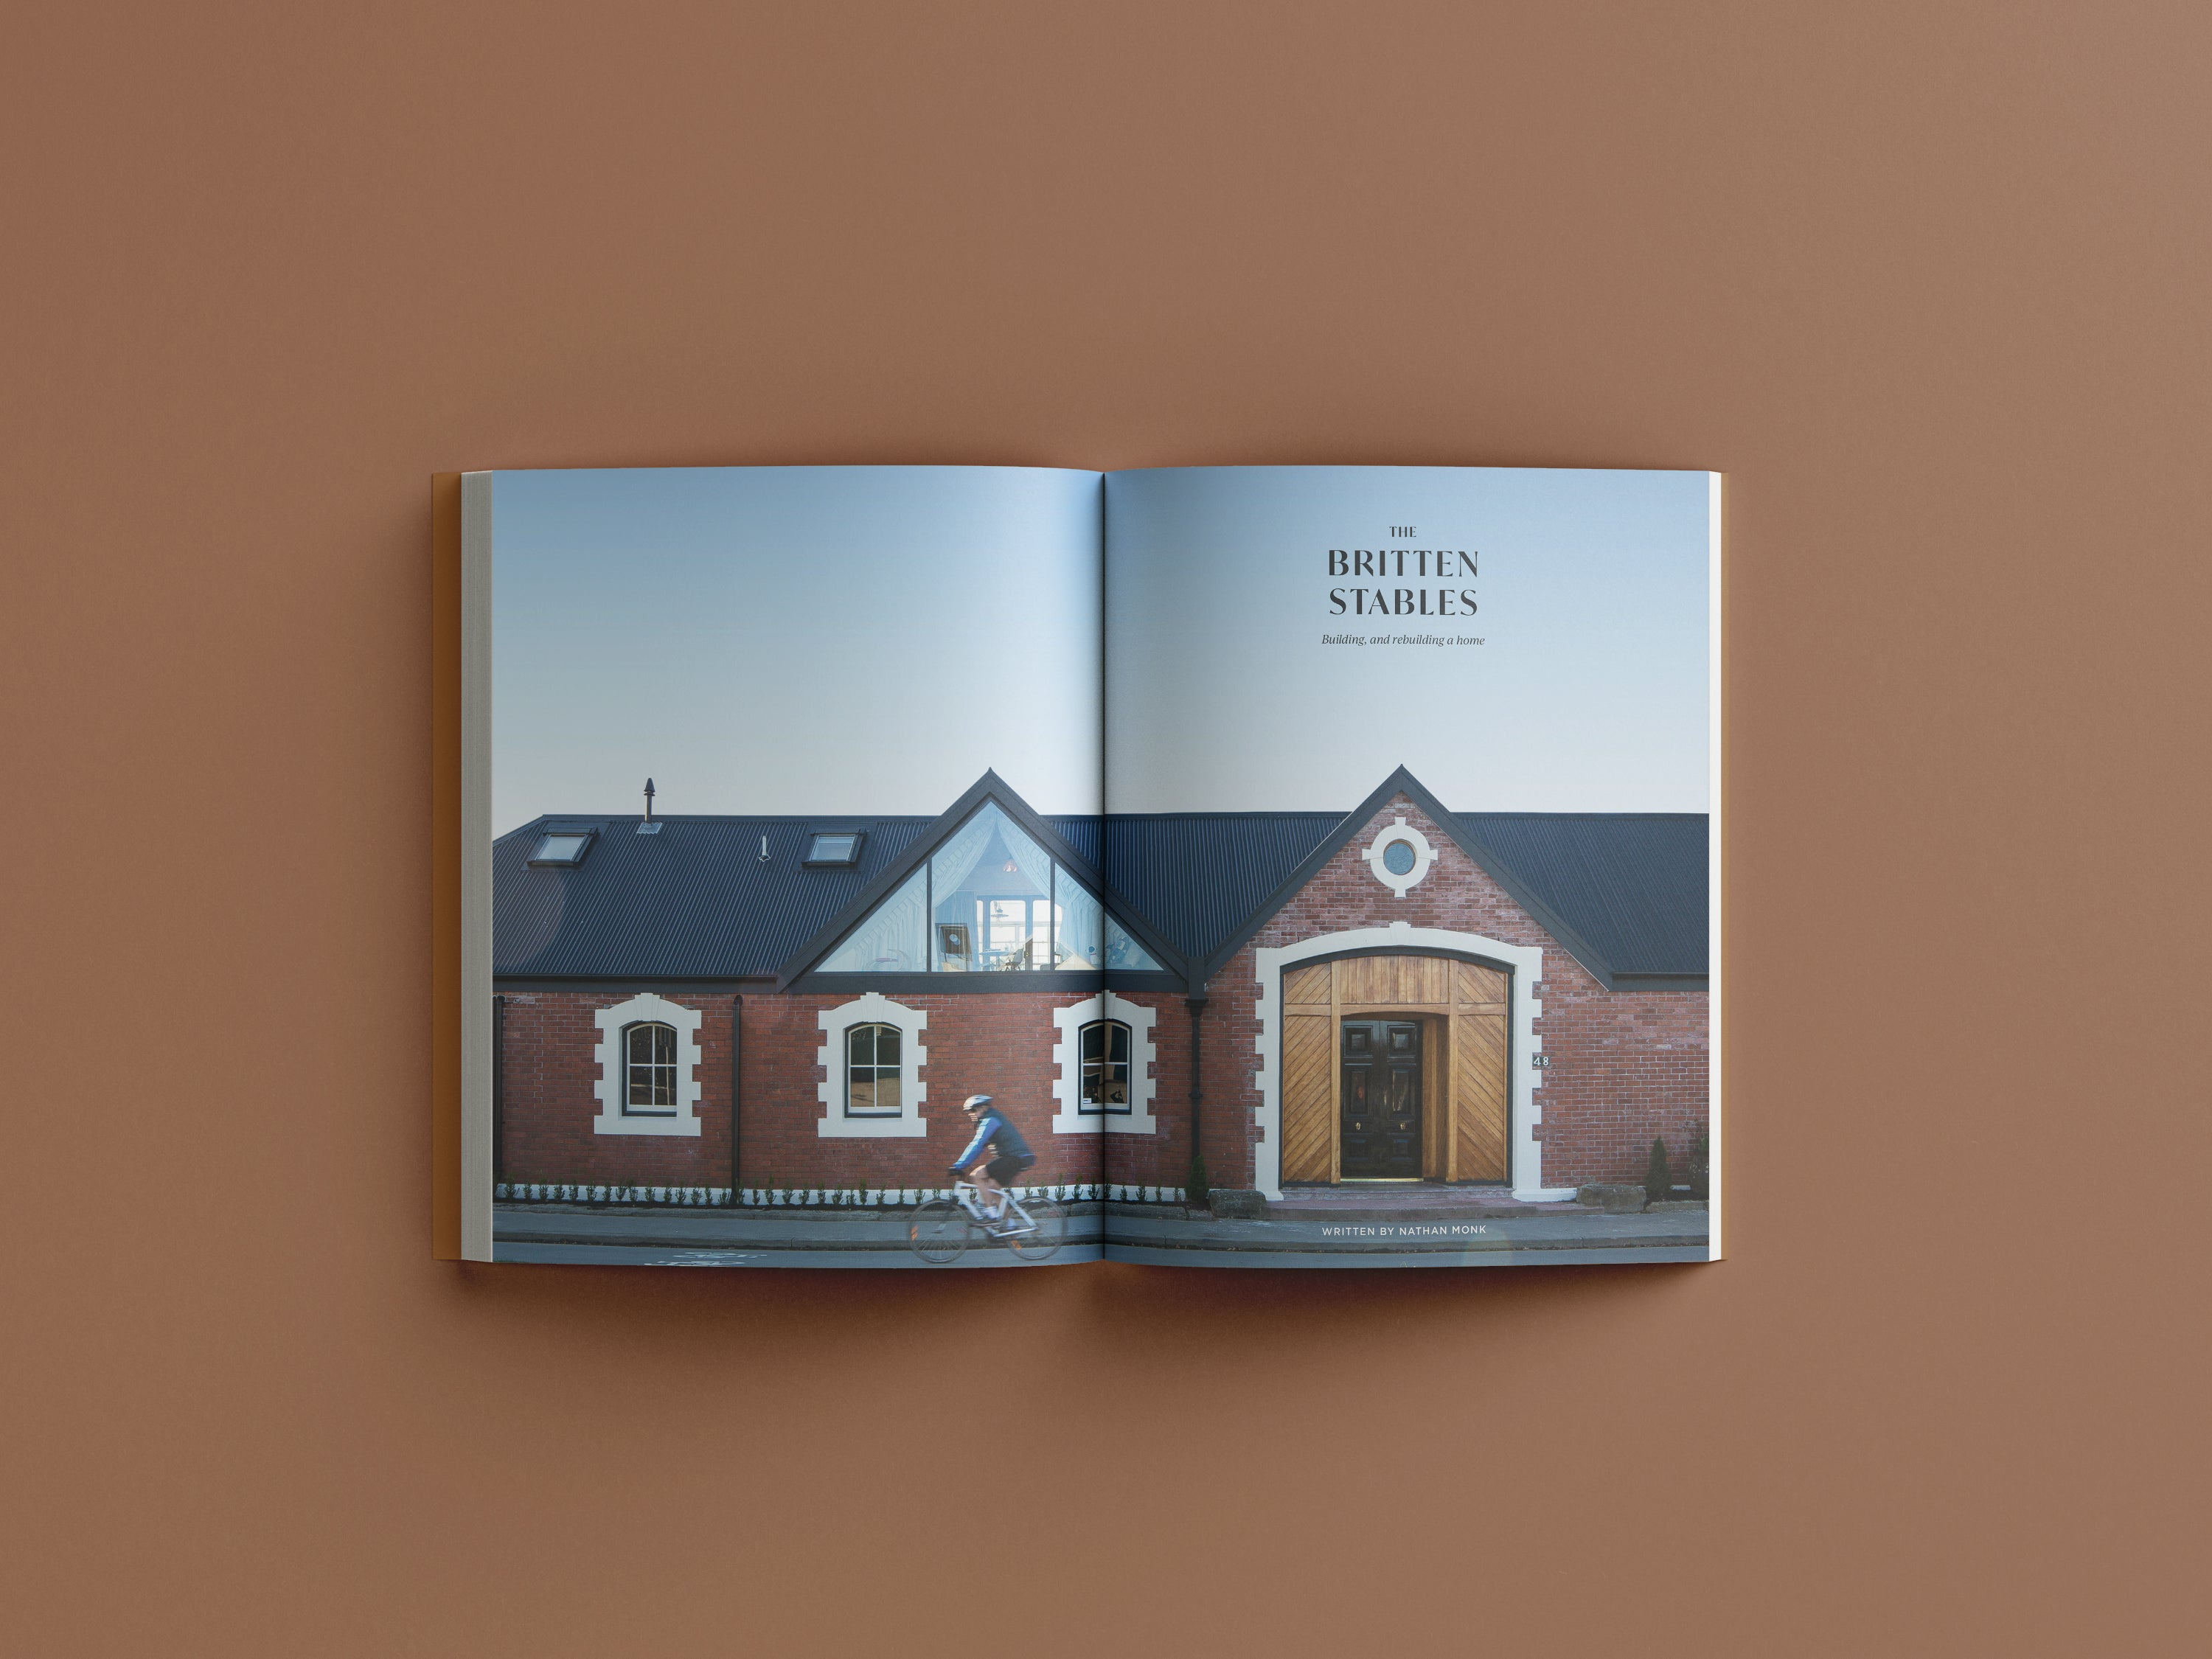 The Britten Stables Book